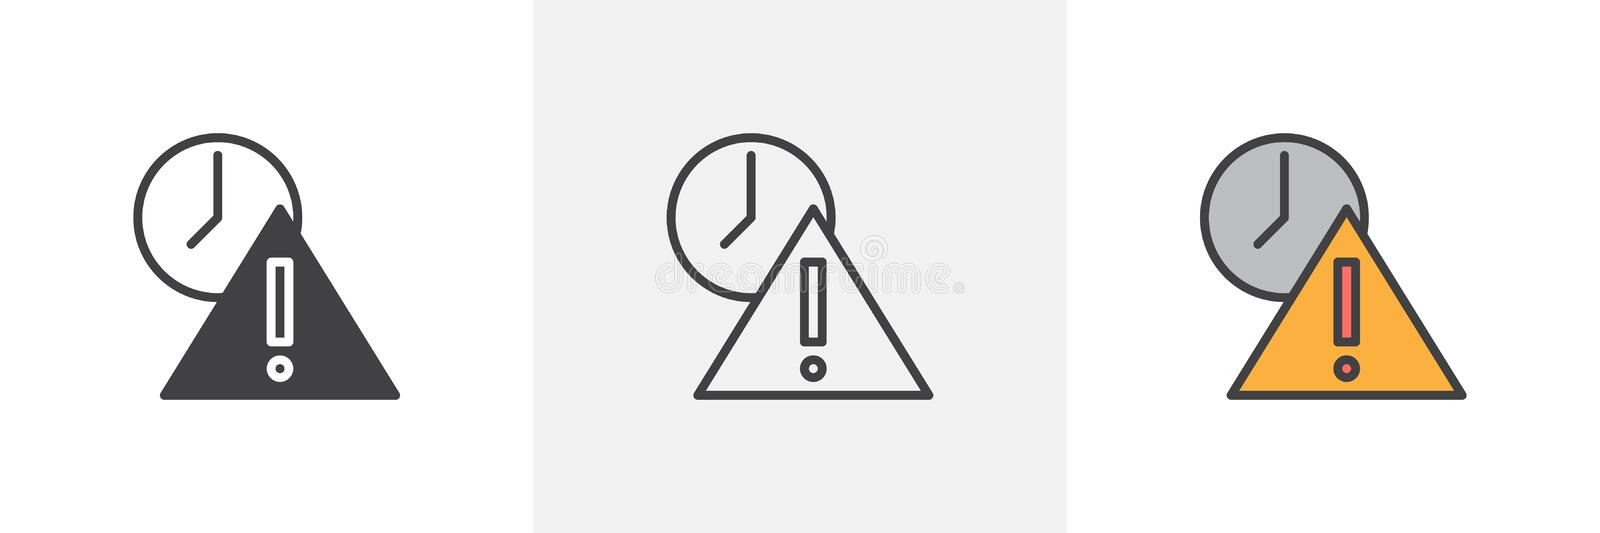 Deadline warning notice icon royalty free illustration